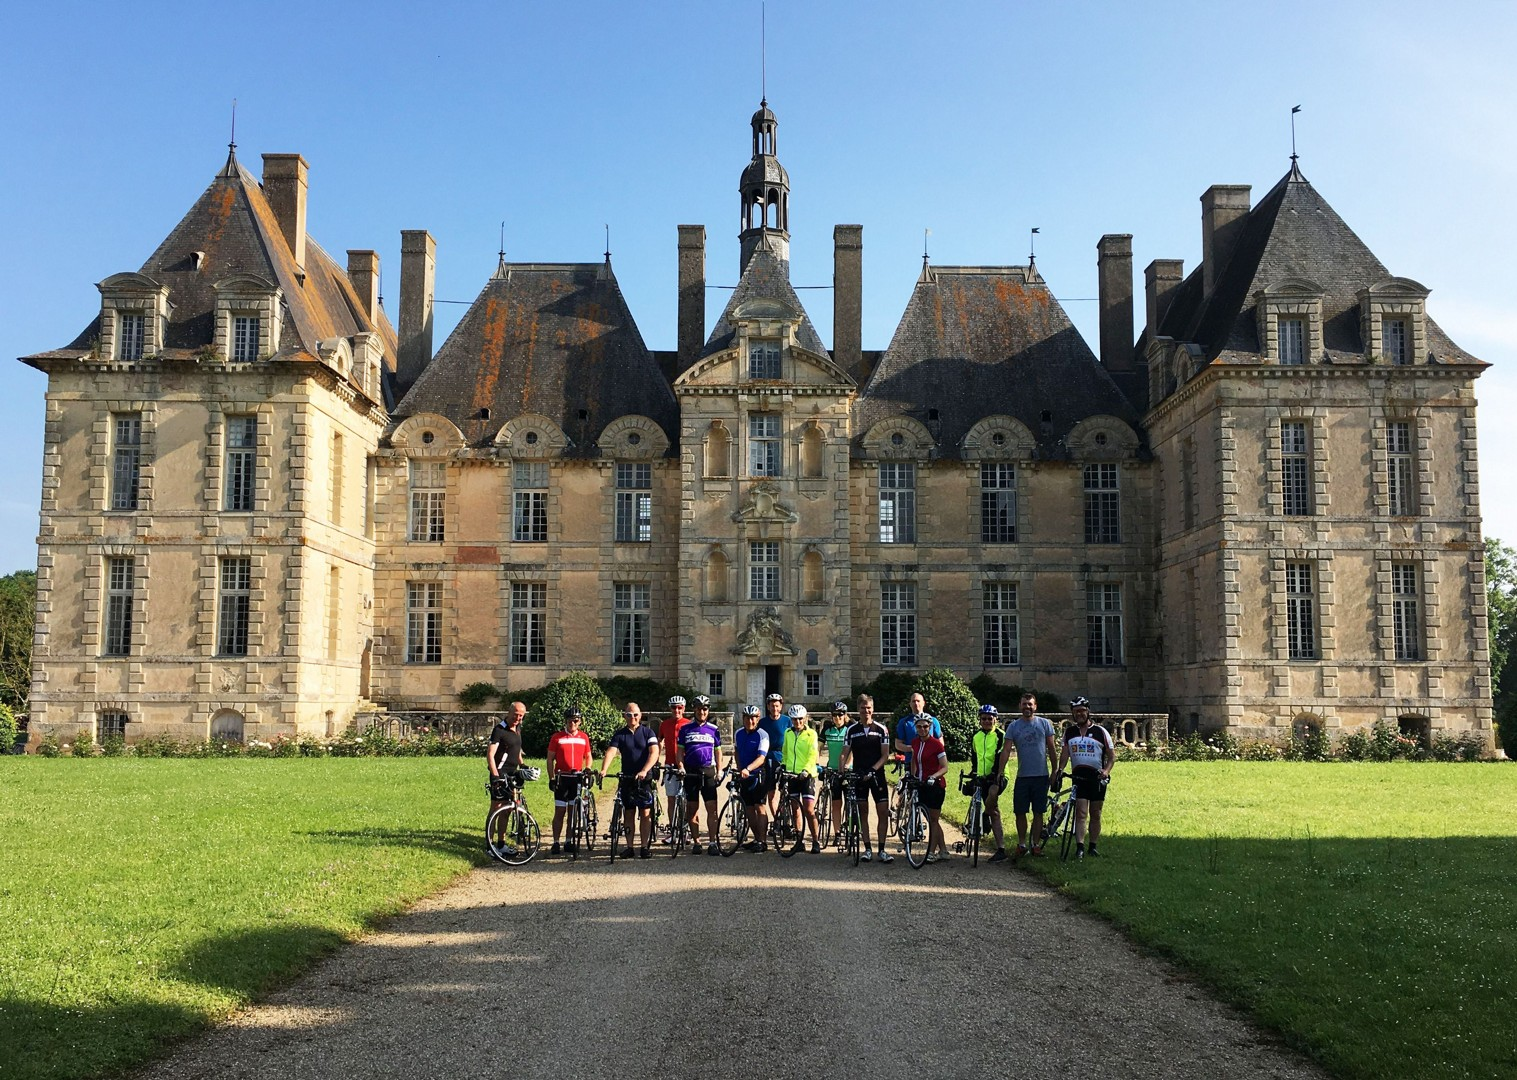 st-malo-to-nice-france-cycling-holiday.jpg - France - St Malo to Nice Classic - Road Cycling